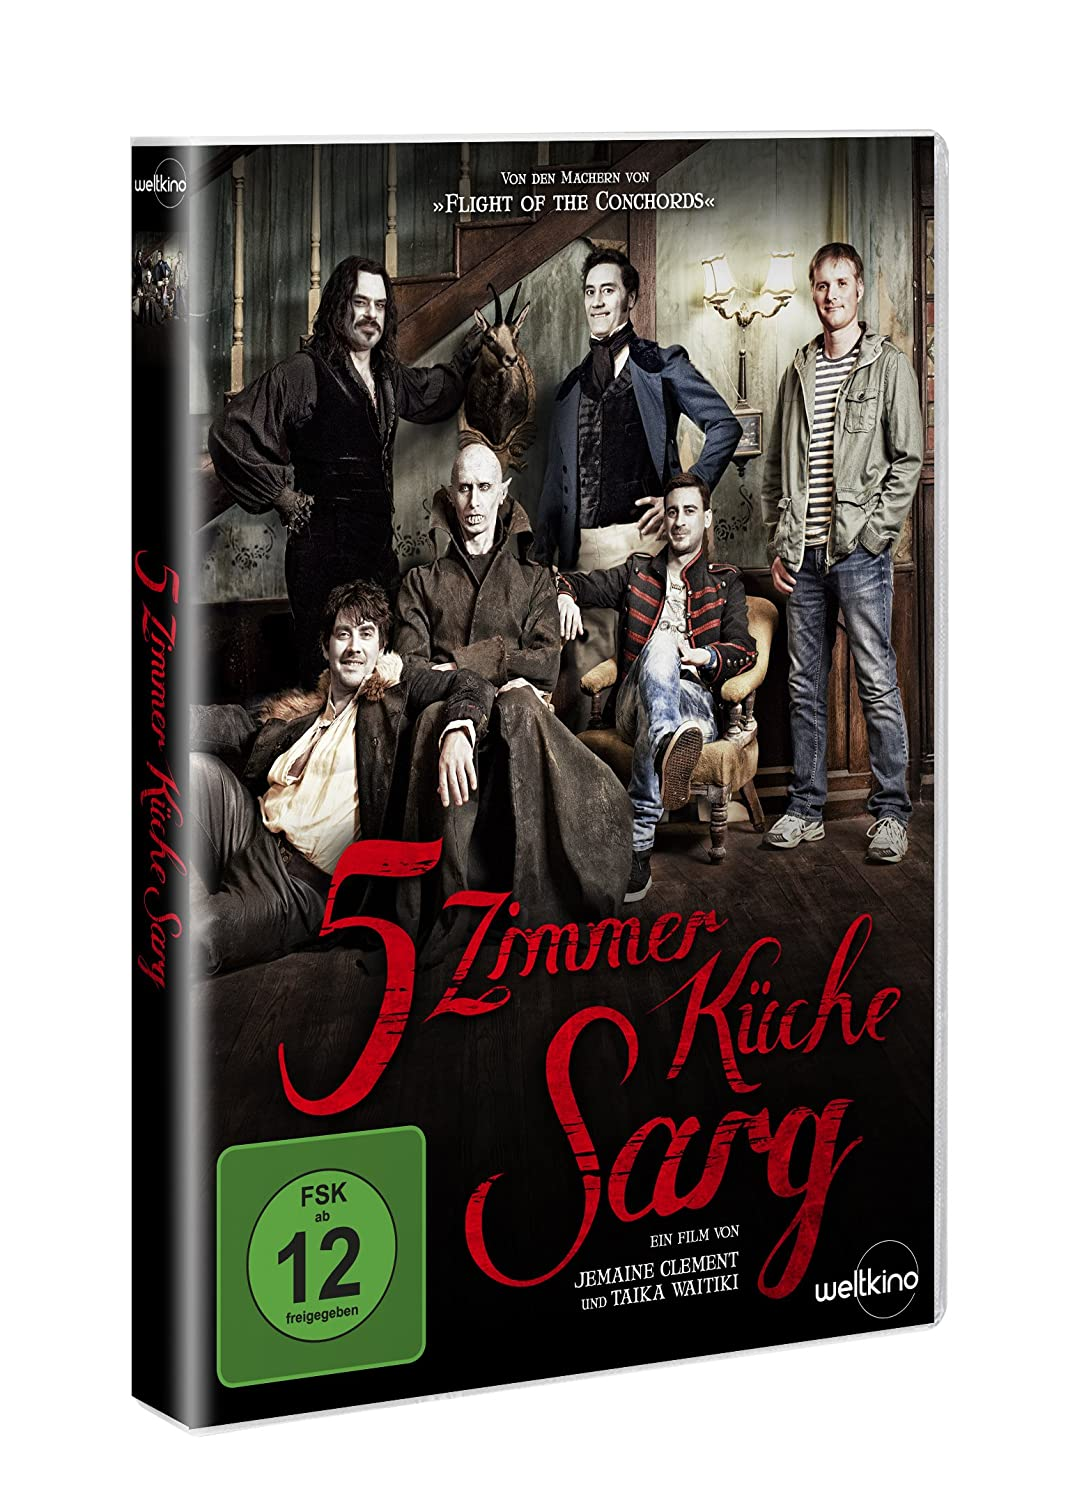 17 Zimmer, Küche, Sarg: Amazon.de: Taika Waititi, Jemaine Clement